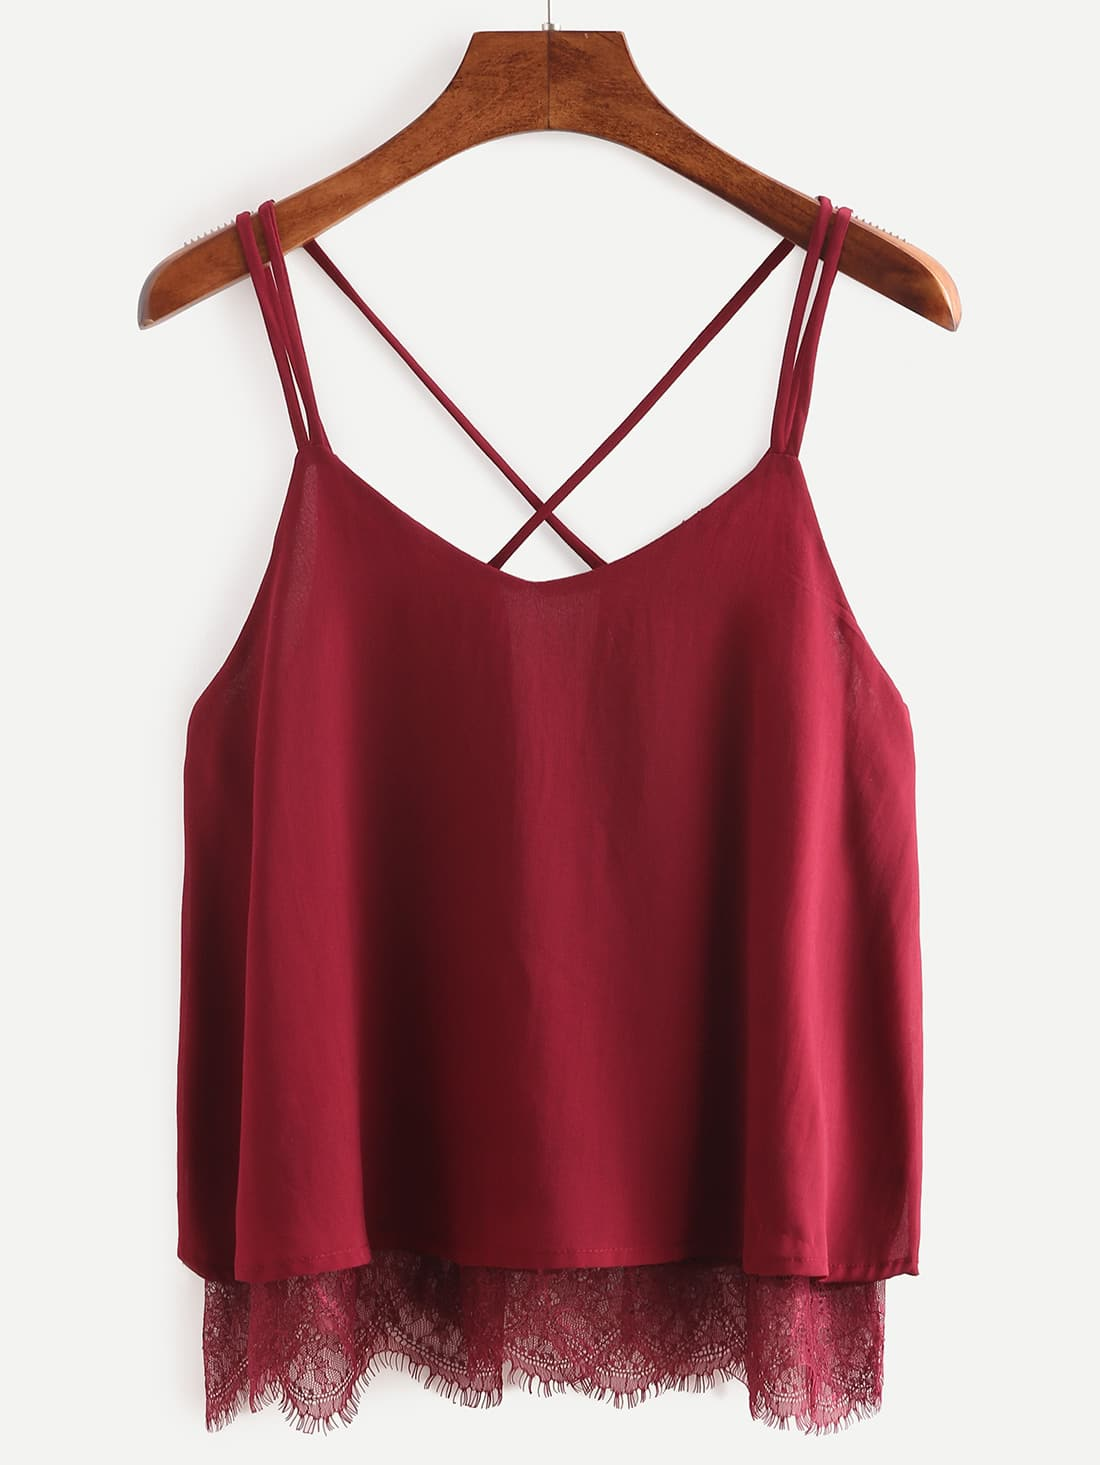 Lace Trimmed Crisscross Chiffon Cami Top - Burgundy